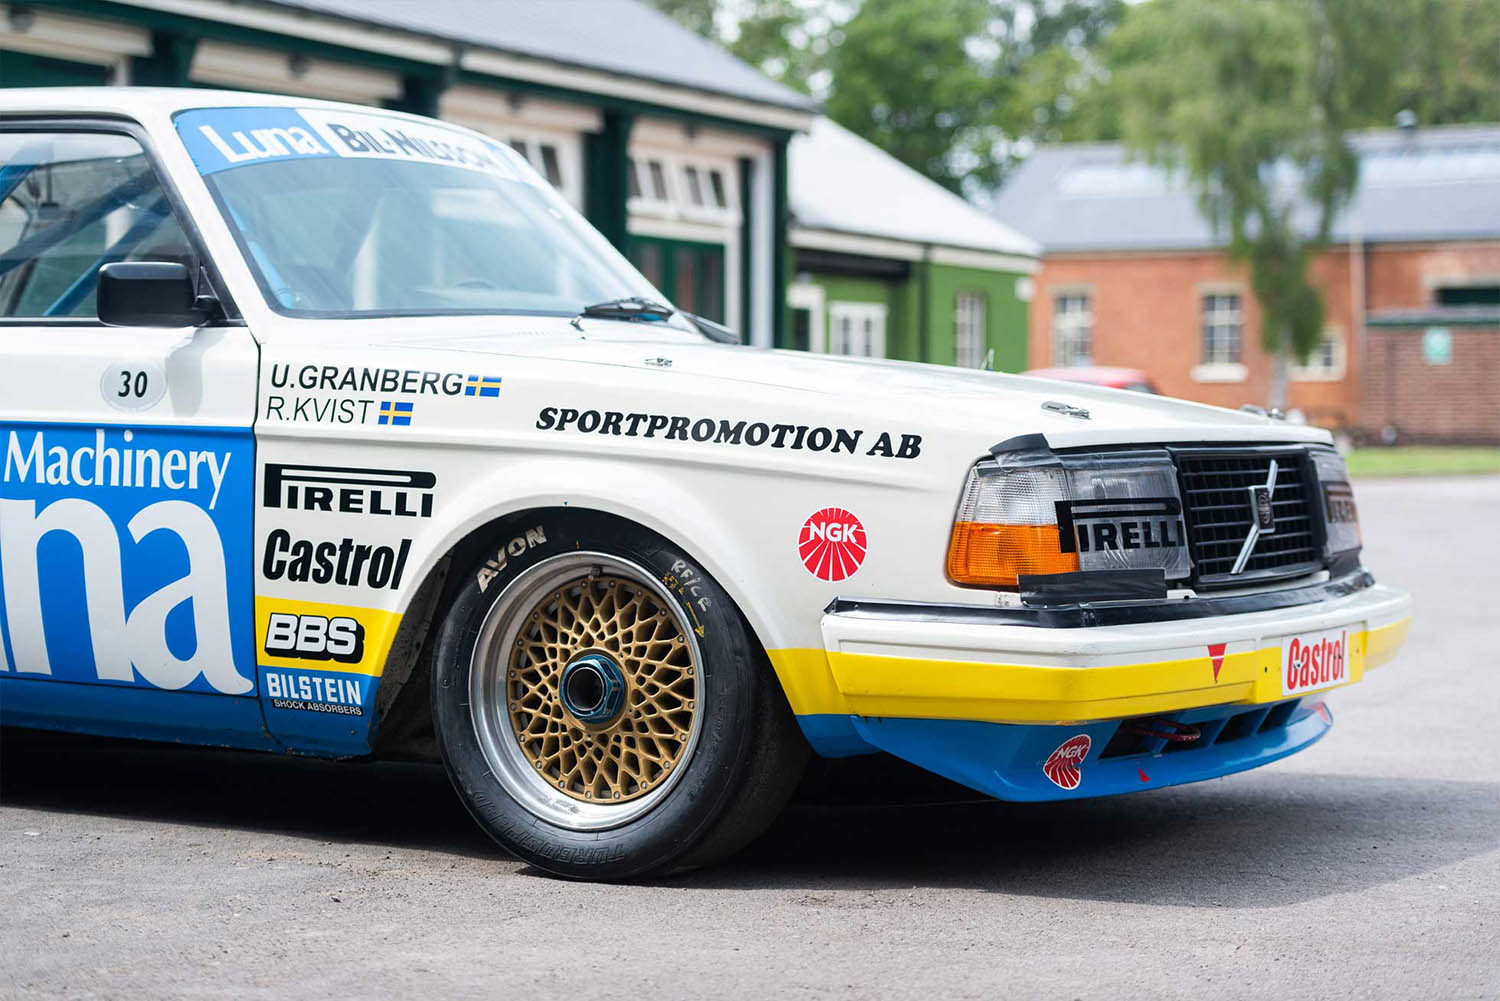 5d2da8c42be6bae4ede1b3b4_insert2-for-sale-1984-volvo-240-turbo-group-abicester-heritage-oxfordshire-uk-sports-purpose-porsche-specialists.jpg